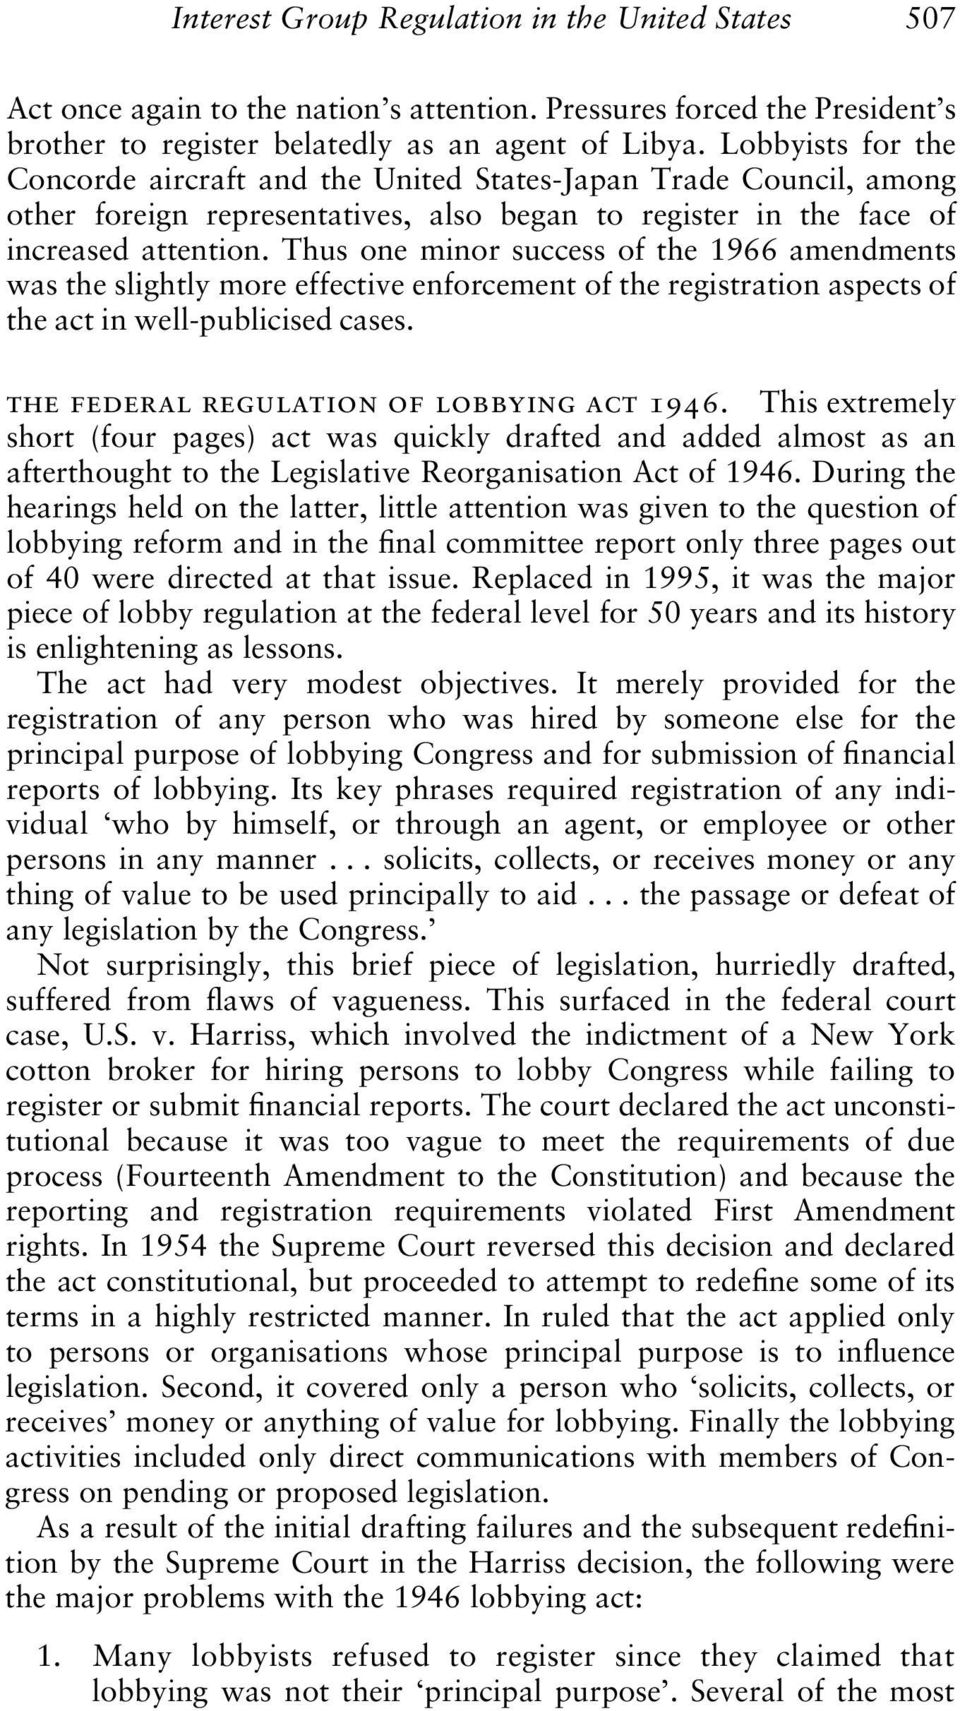 Thus one minor success of the 1966 amendments was the slightly more effective enforcement of the registration aspects of the act in well-publicised cases. the federal regulation of lobbying act 1946.